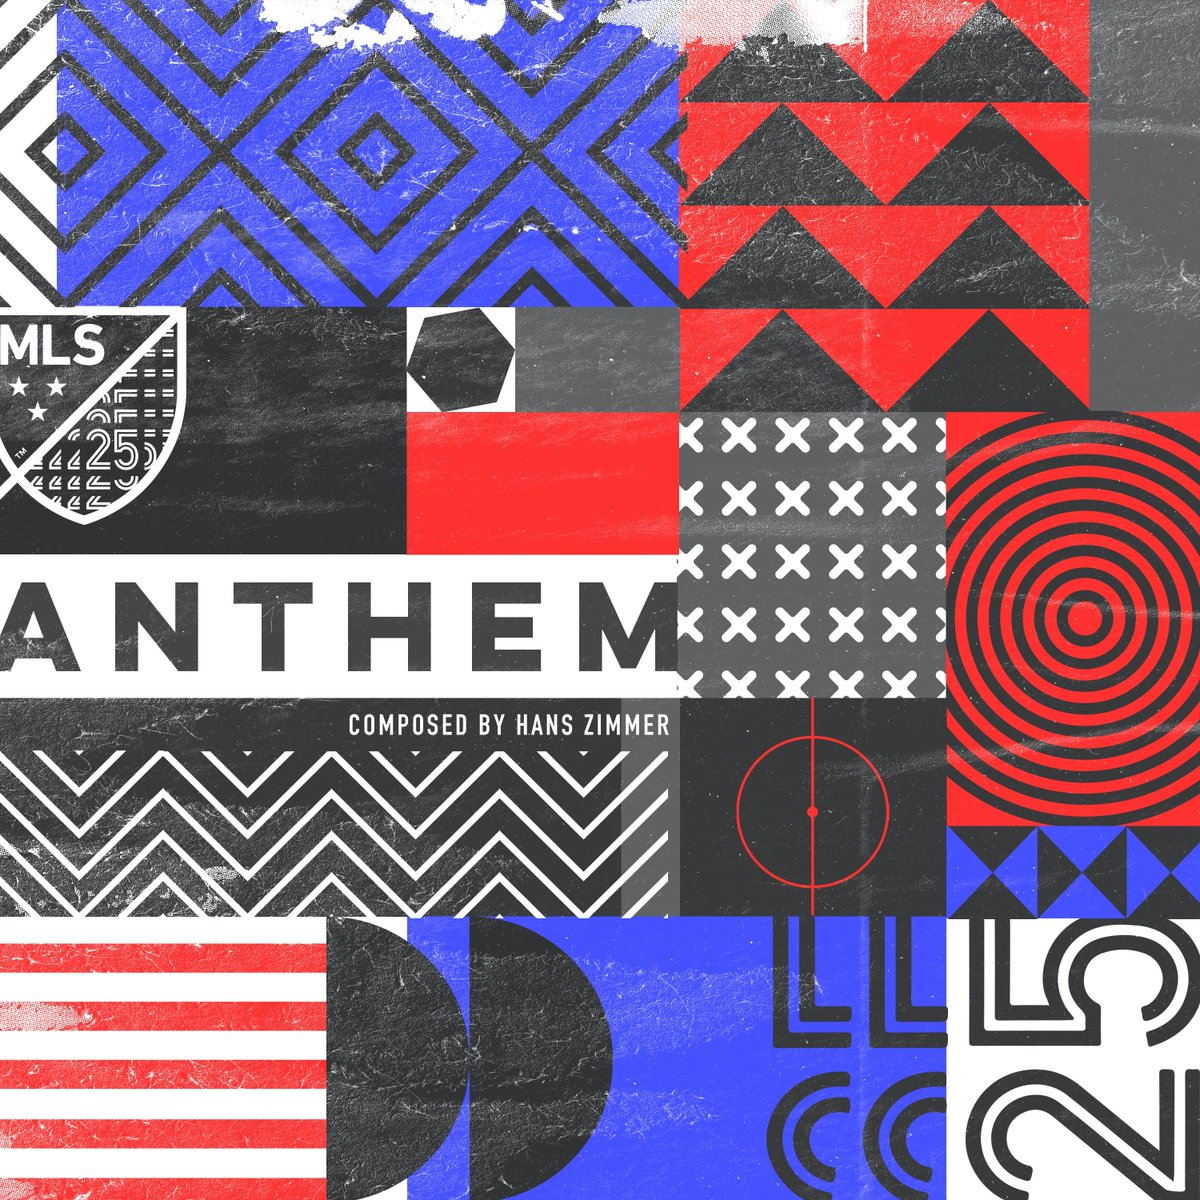 The new @MLS anthem is now available to stream on all music platforms. Congratulations to @LAFC fan @MarvinPMChavez for designing the winning album art – it brings my composition to a new level. Cheers to the league's 25th season. ⚽ https://t.co/29CkvOp0mj